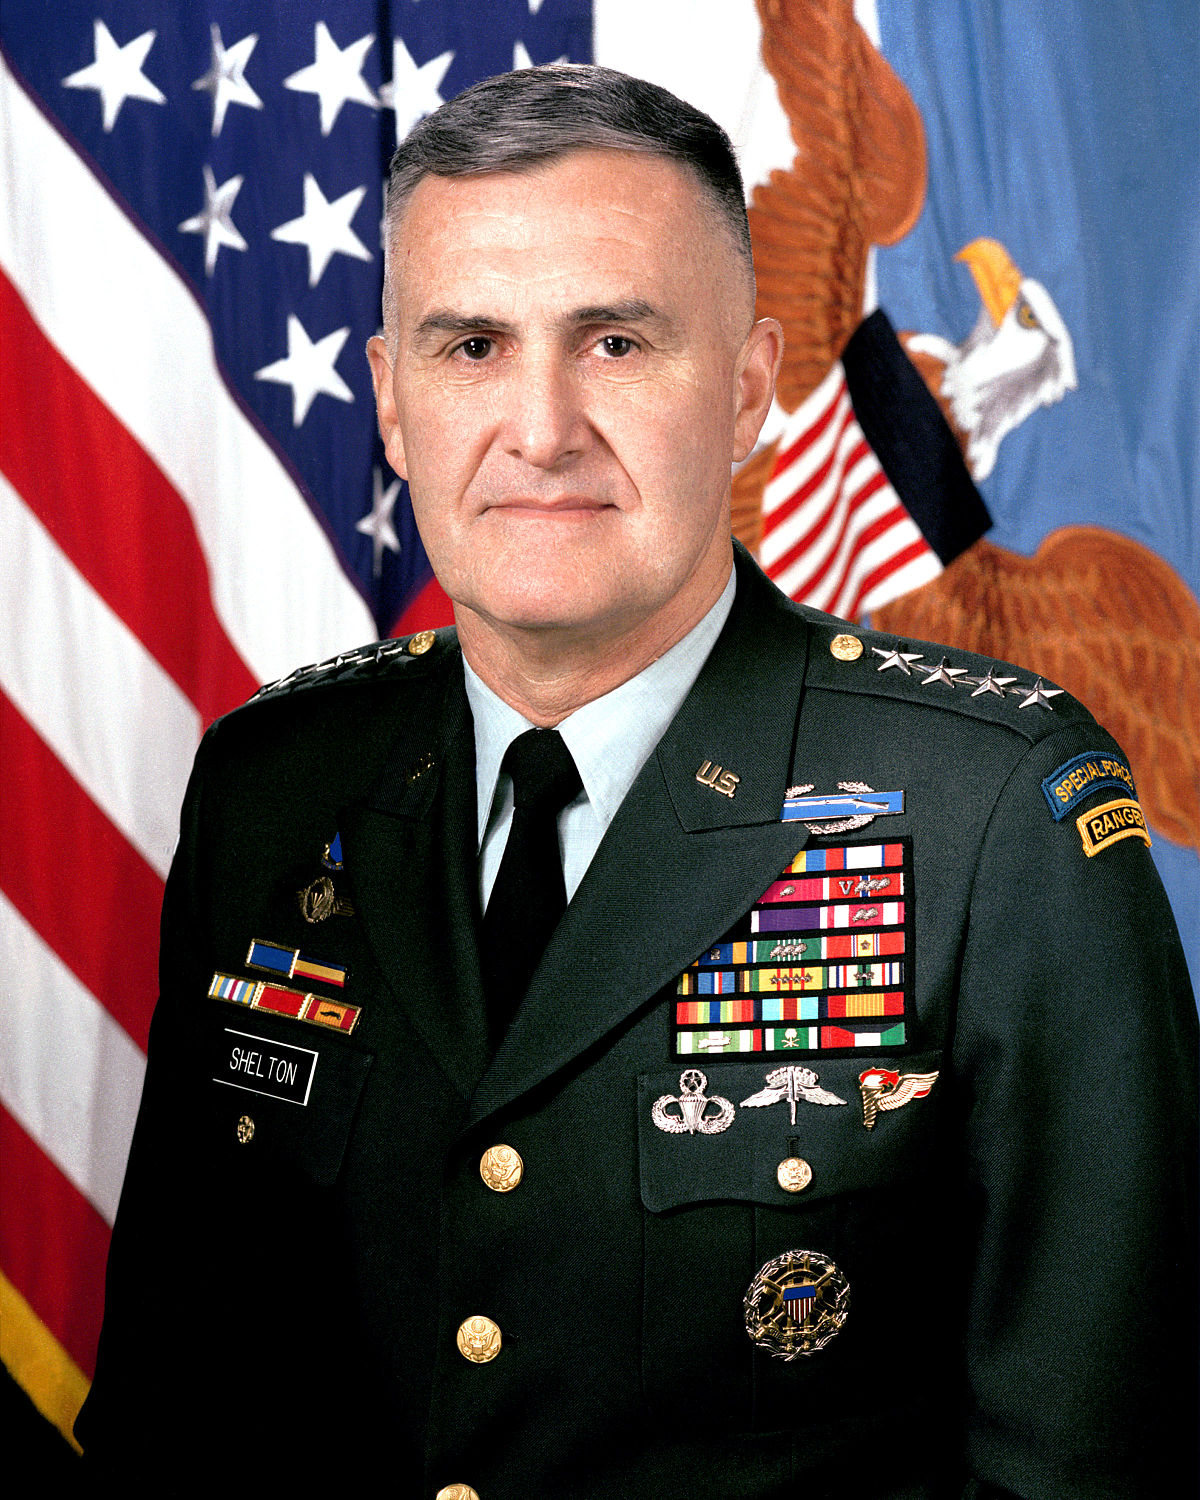 1200px-General_Henry_Shelton,_official_portrait_2.jpg